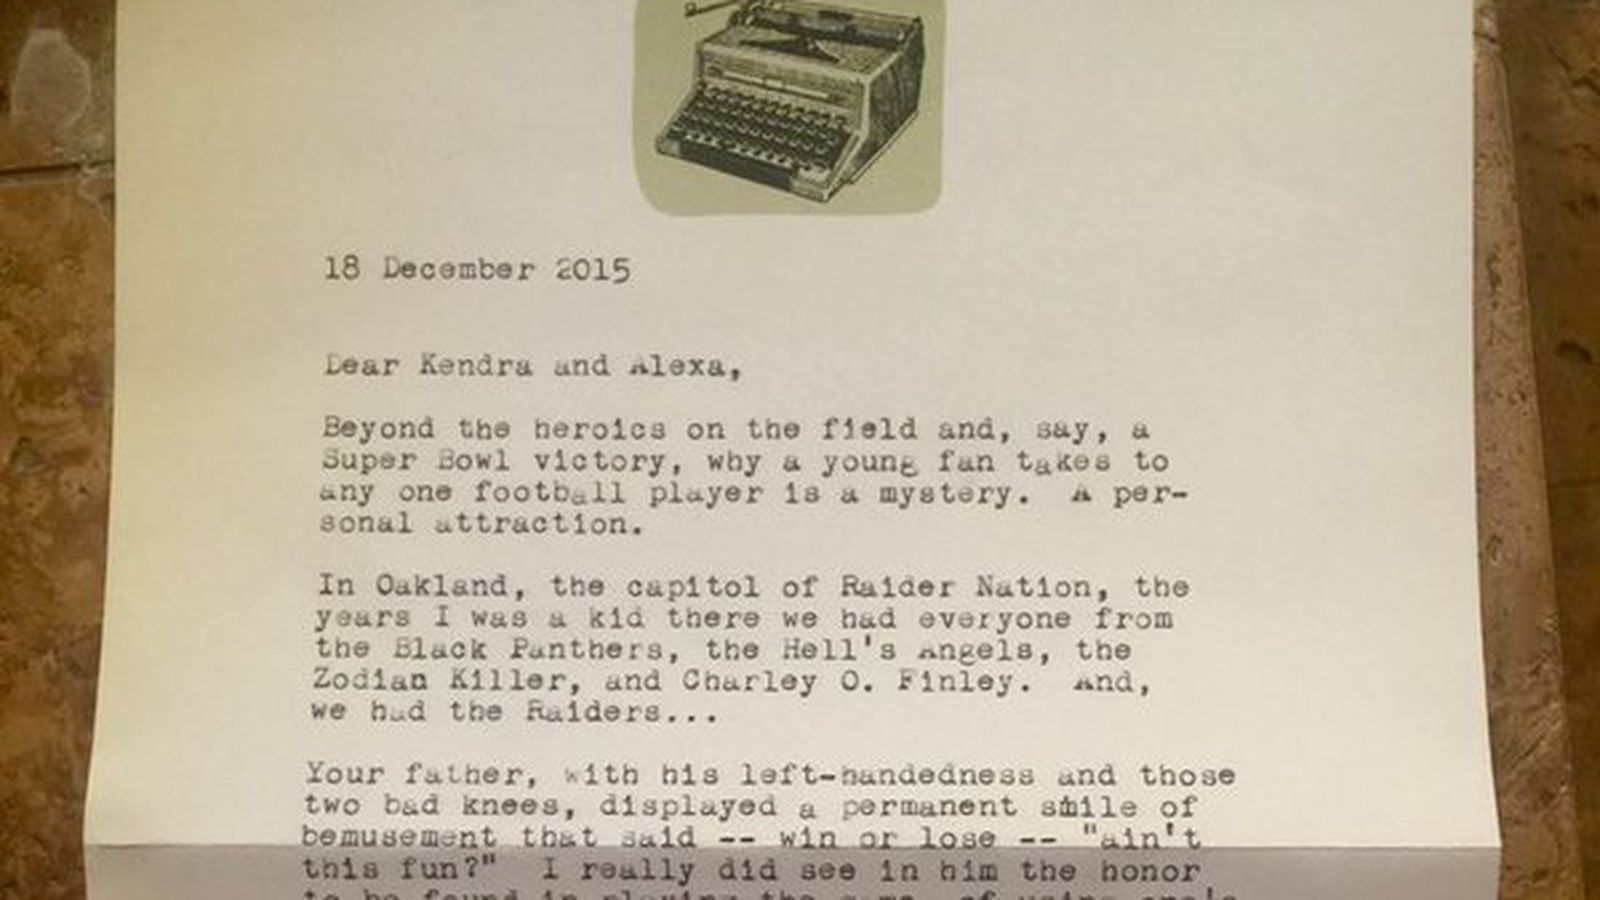 tom hanks wrote a letter to kenny stabler u0026 39 s daughter that